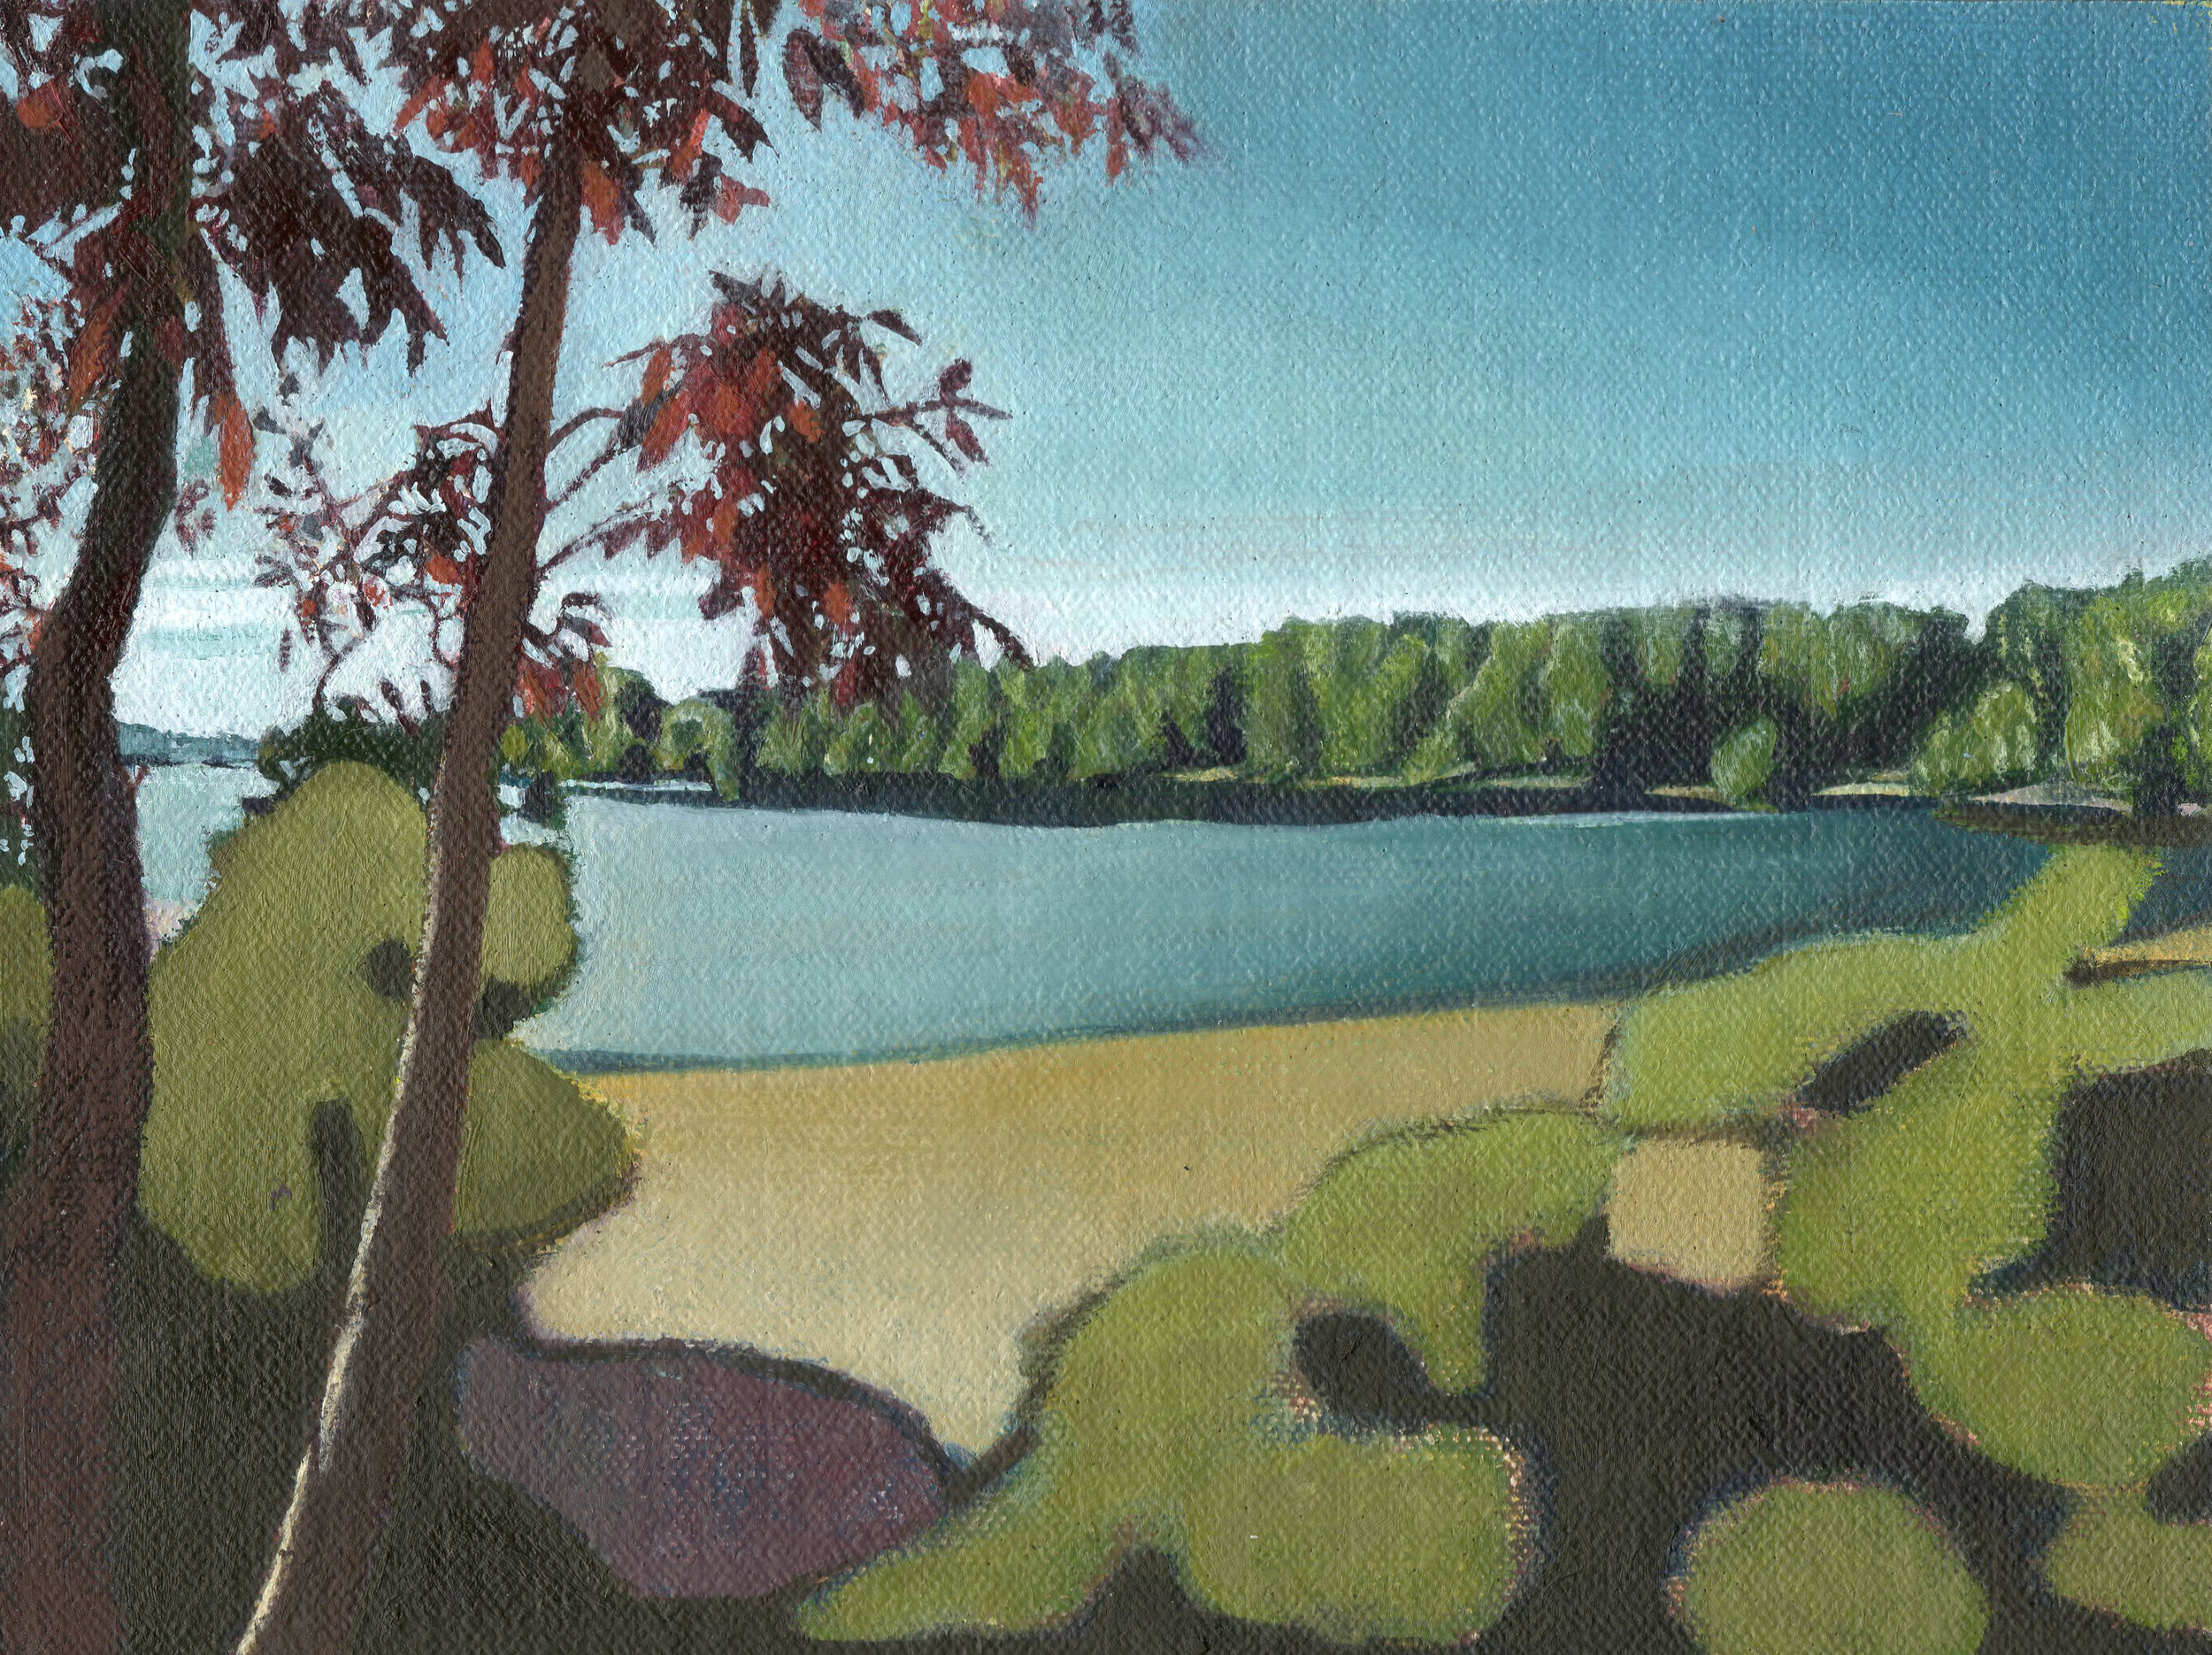 Vukoar, Croatia, 2014,  oil on linen,  6 x 8in.